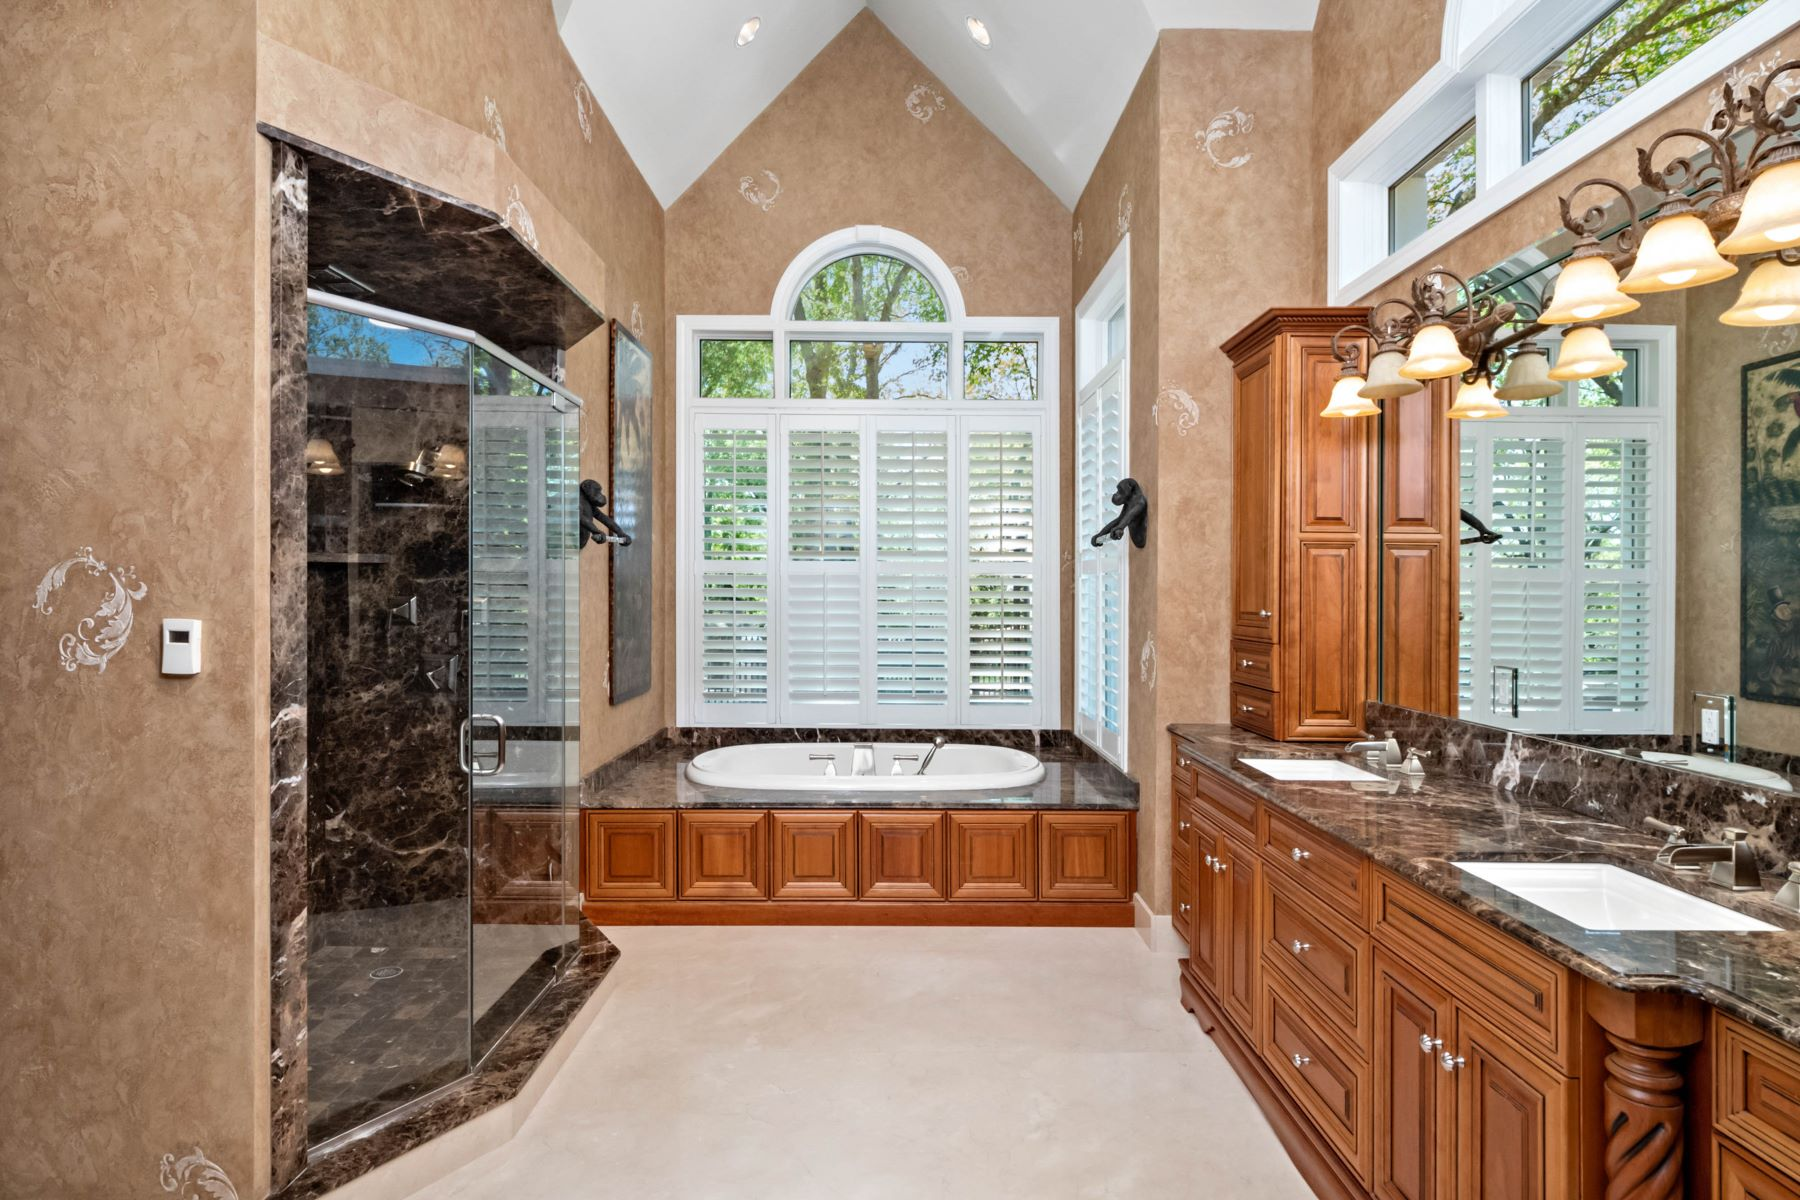 Additional photo for property listing at Executive Estate Nestled on Almost 4 Private Acres in Wildwood 18040 Panorama Drive Wildwood, Missouri 63038 United States